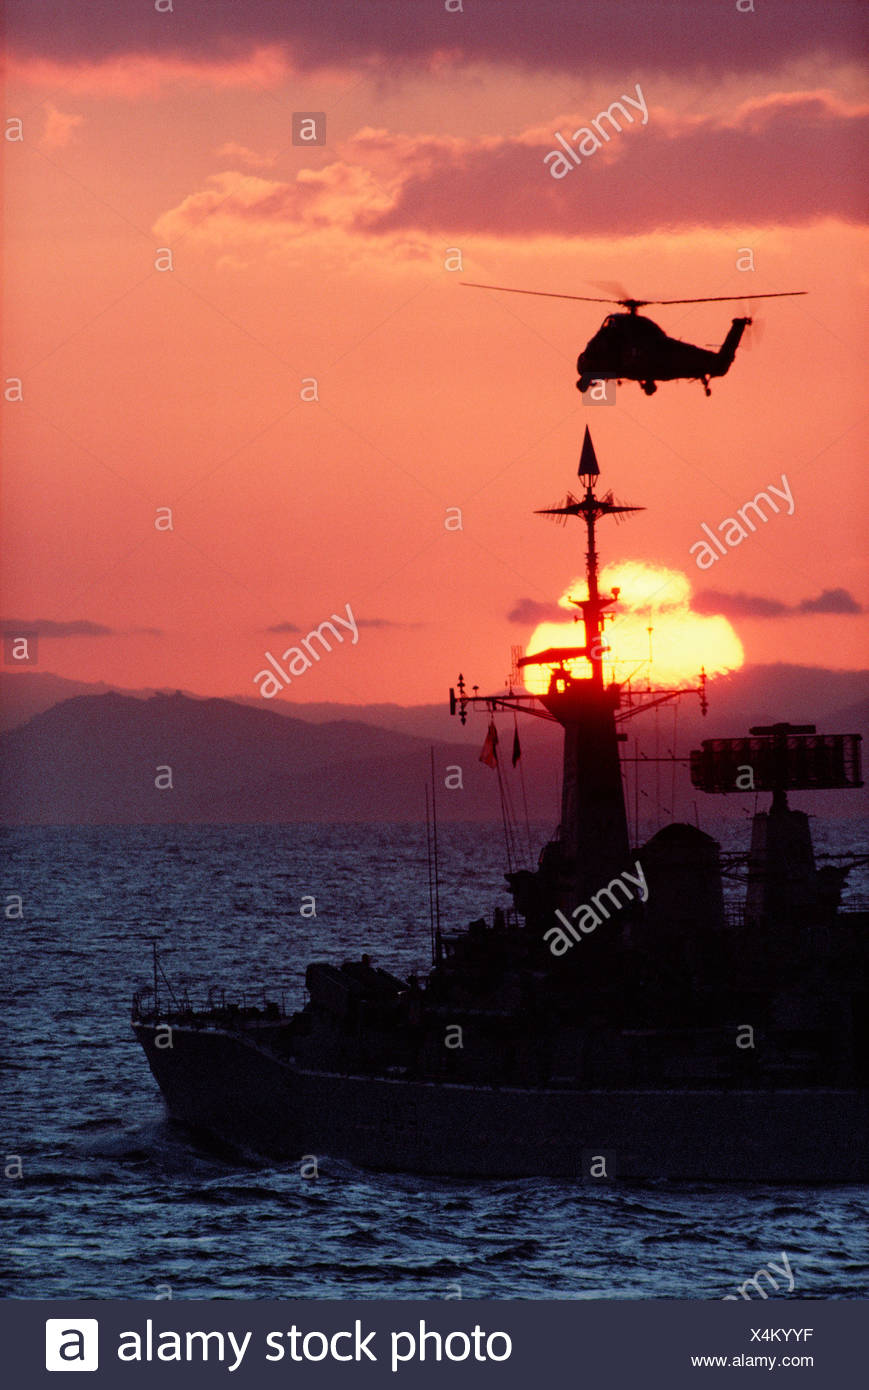 British Navy Warship HMS Minerva with hovering helicopter in sunset. Gulf War. 1991. Operation Desert Storm. - Stock Image